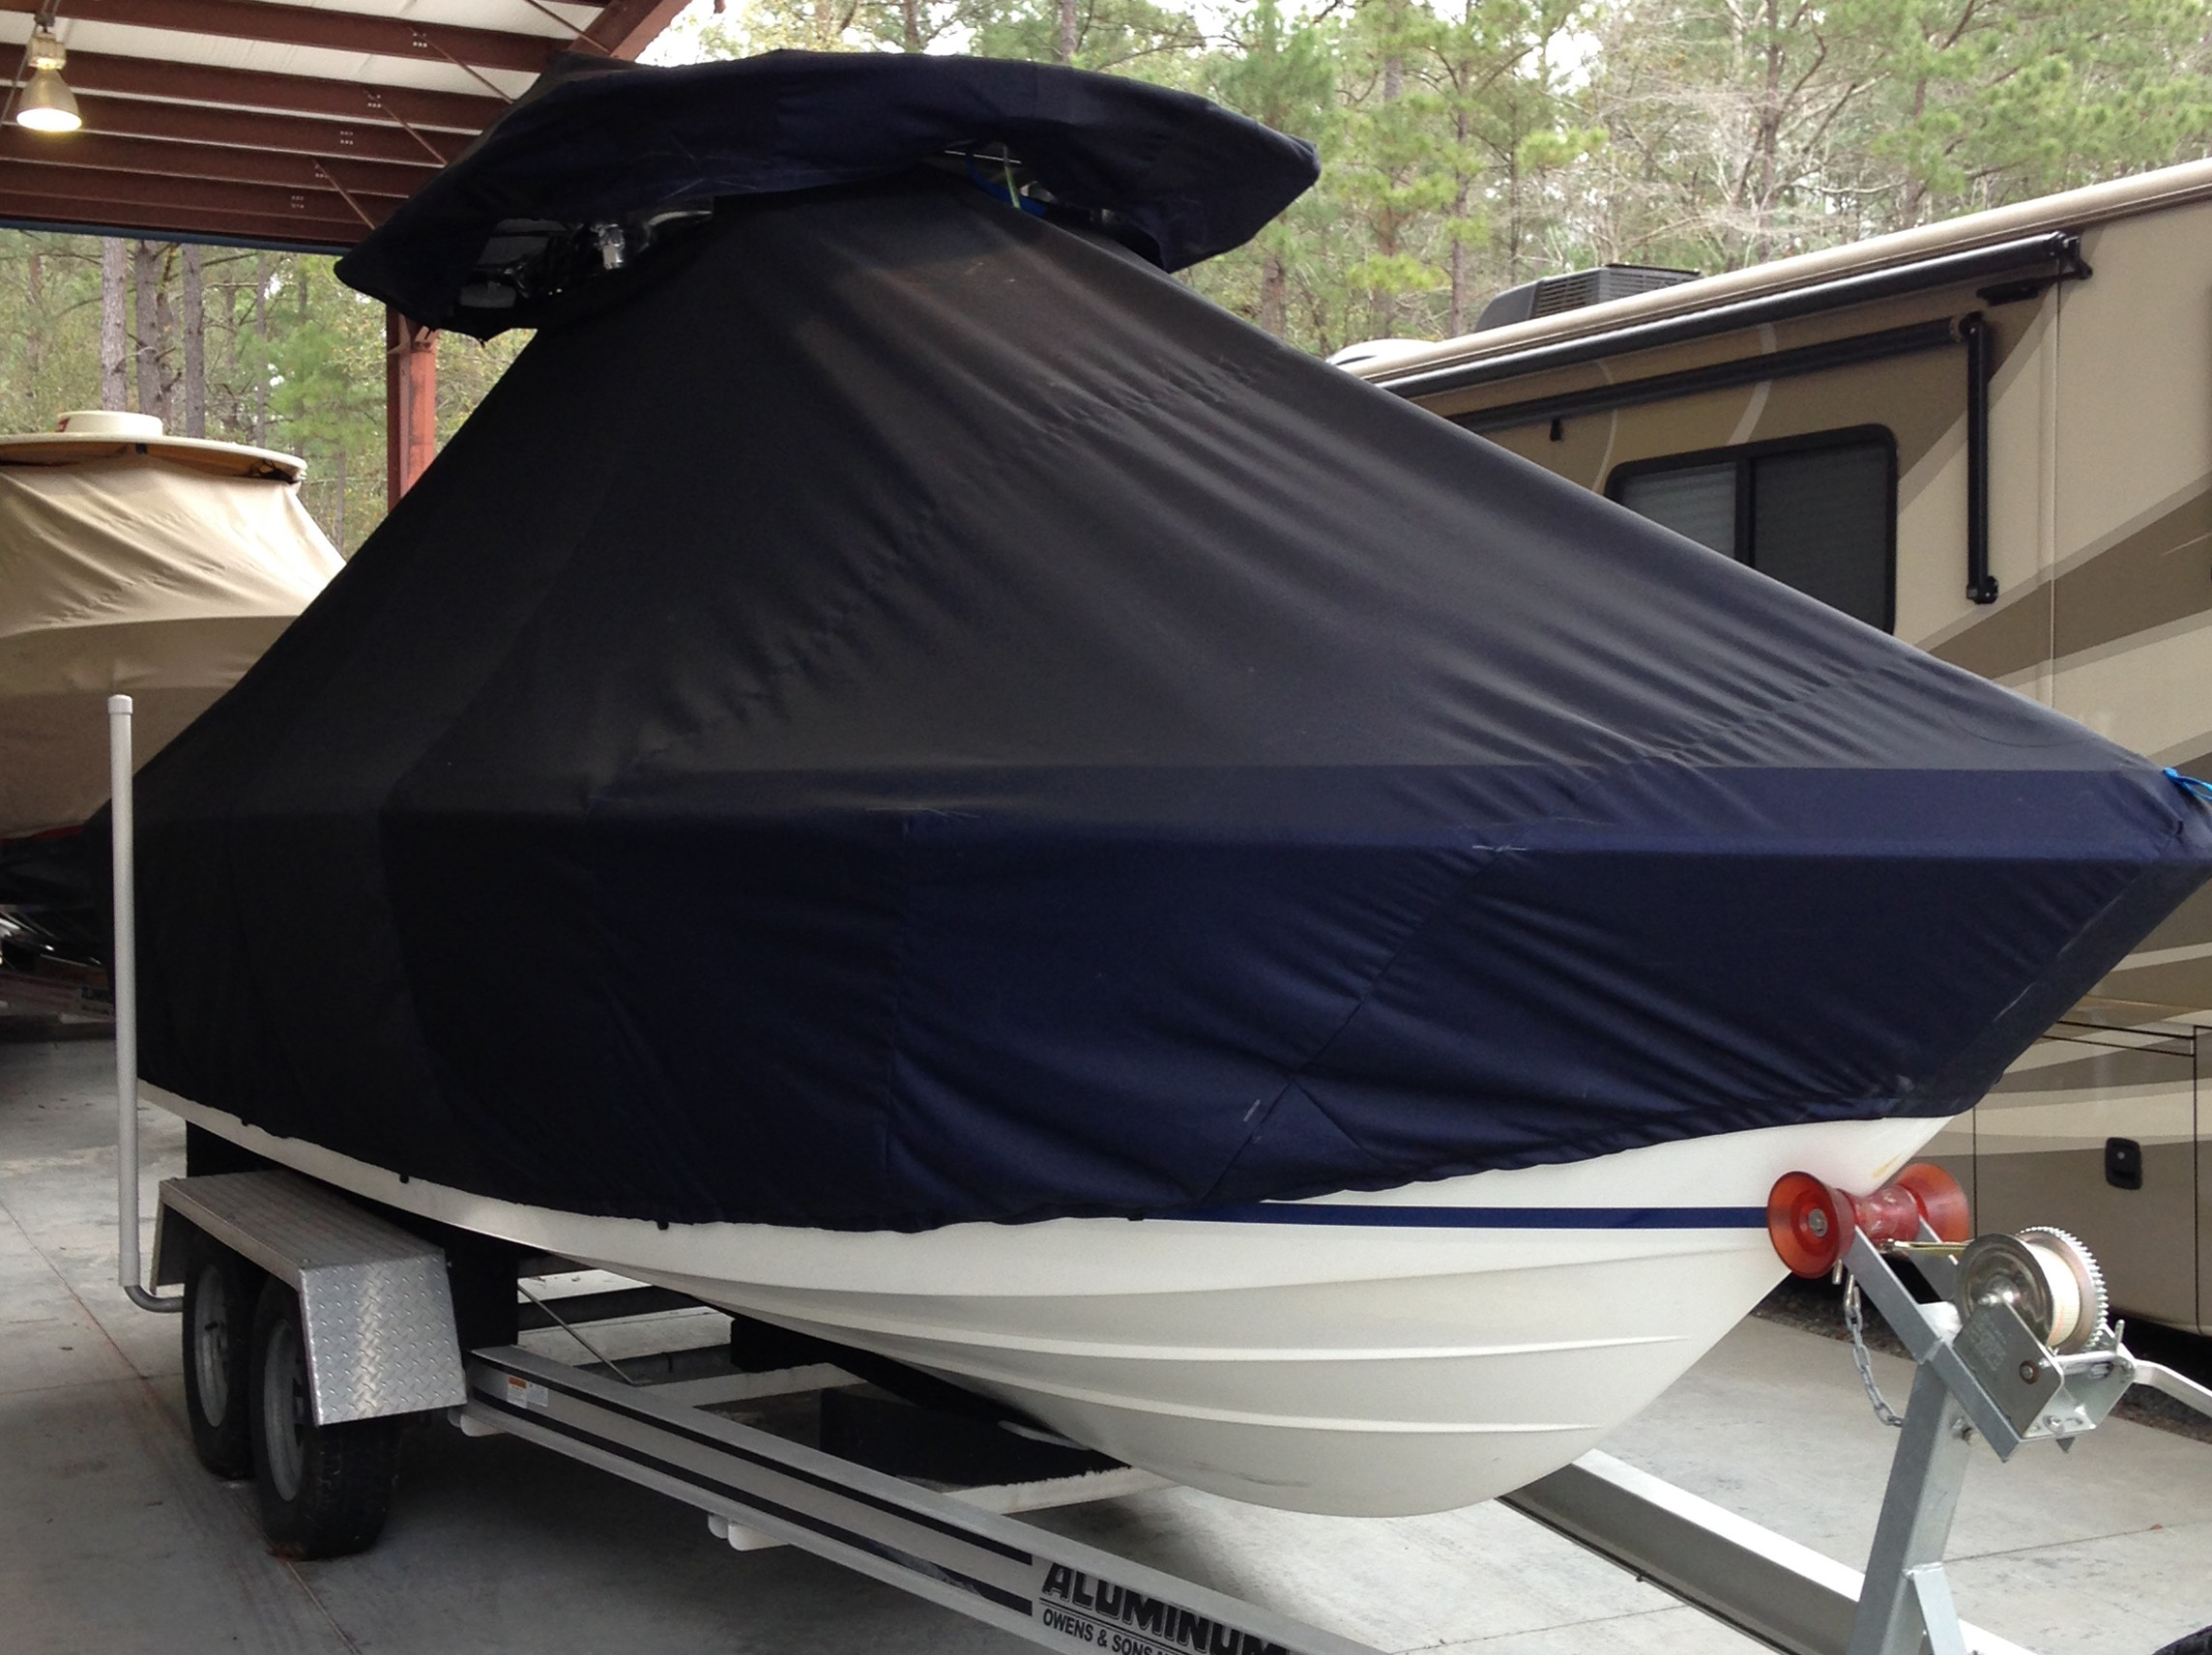 HydraSports 2400CC, 20xx, TTopCovers™ T-Top boat cover, starboard front